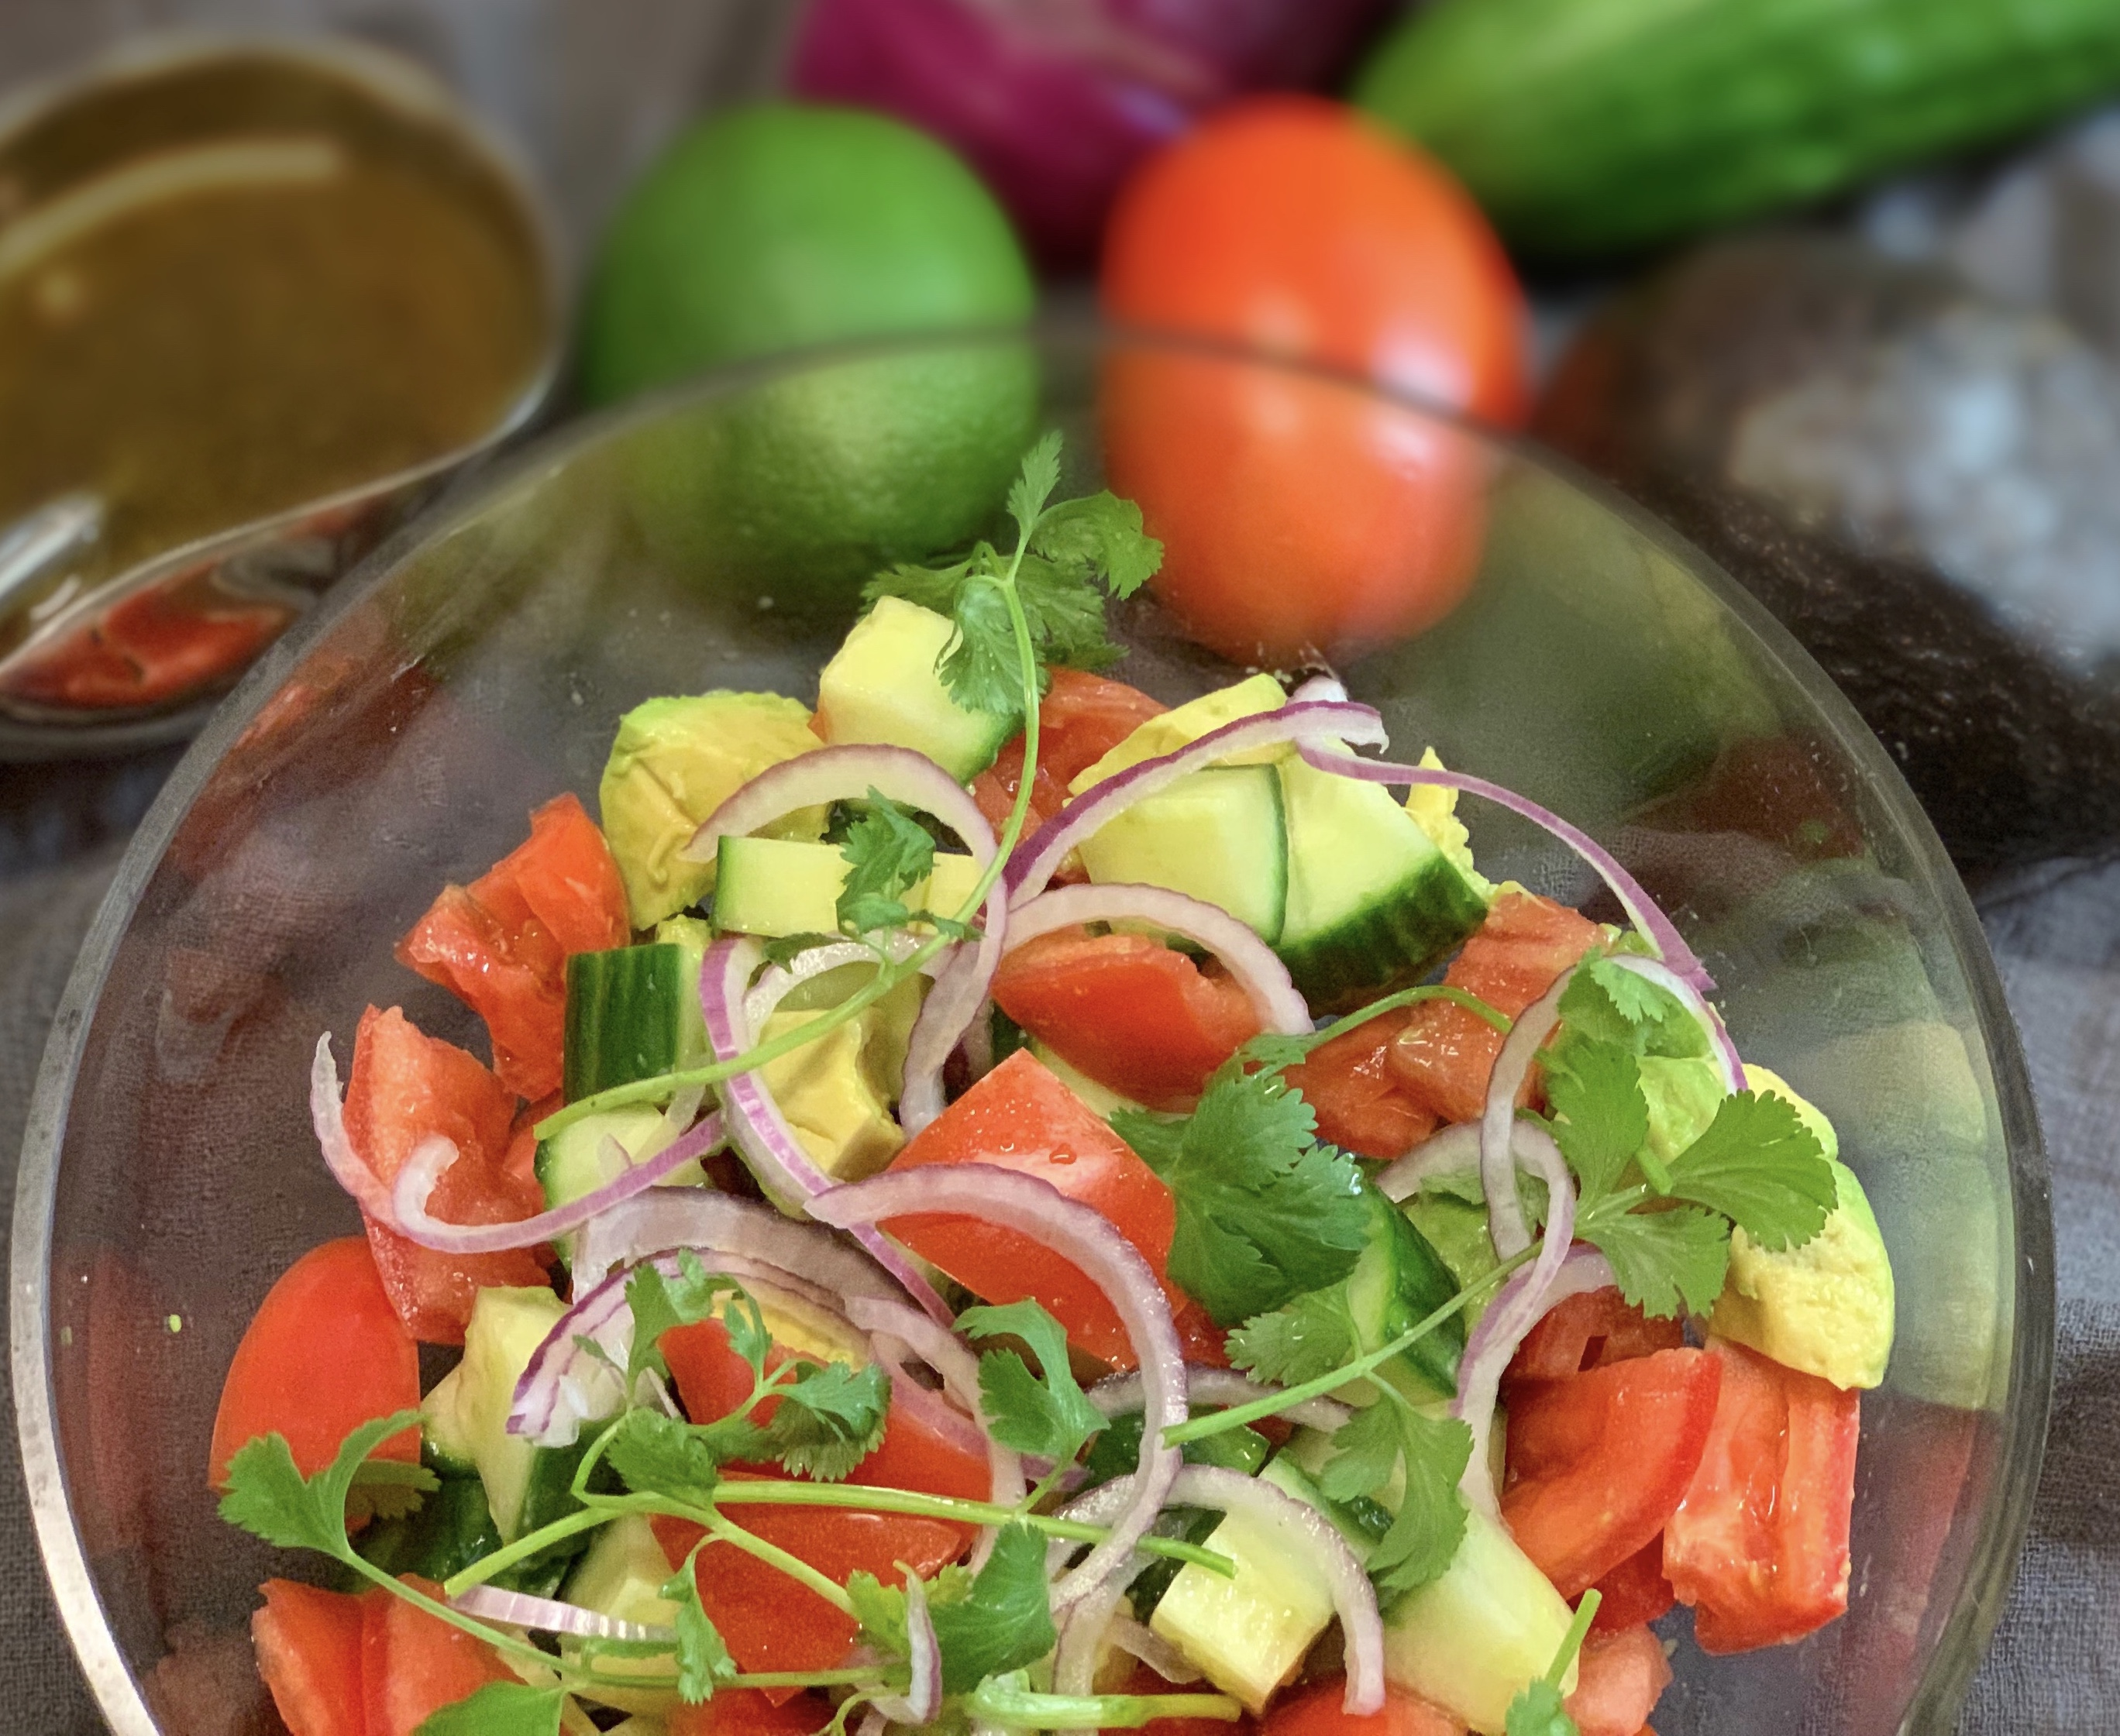 Avocado, Tomato and Cucumber Salad